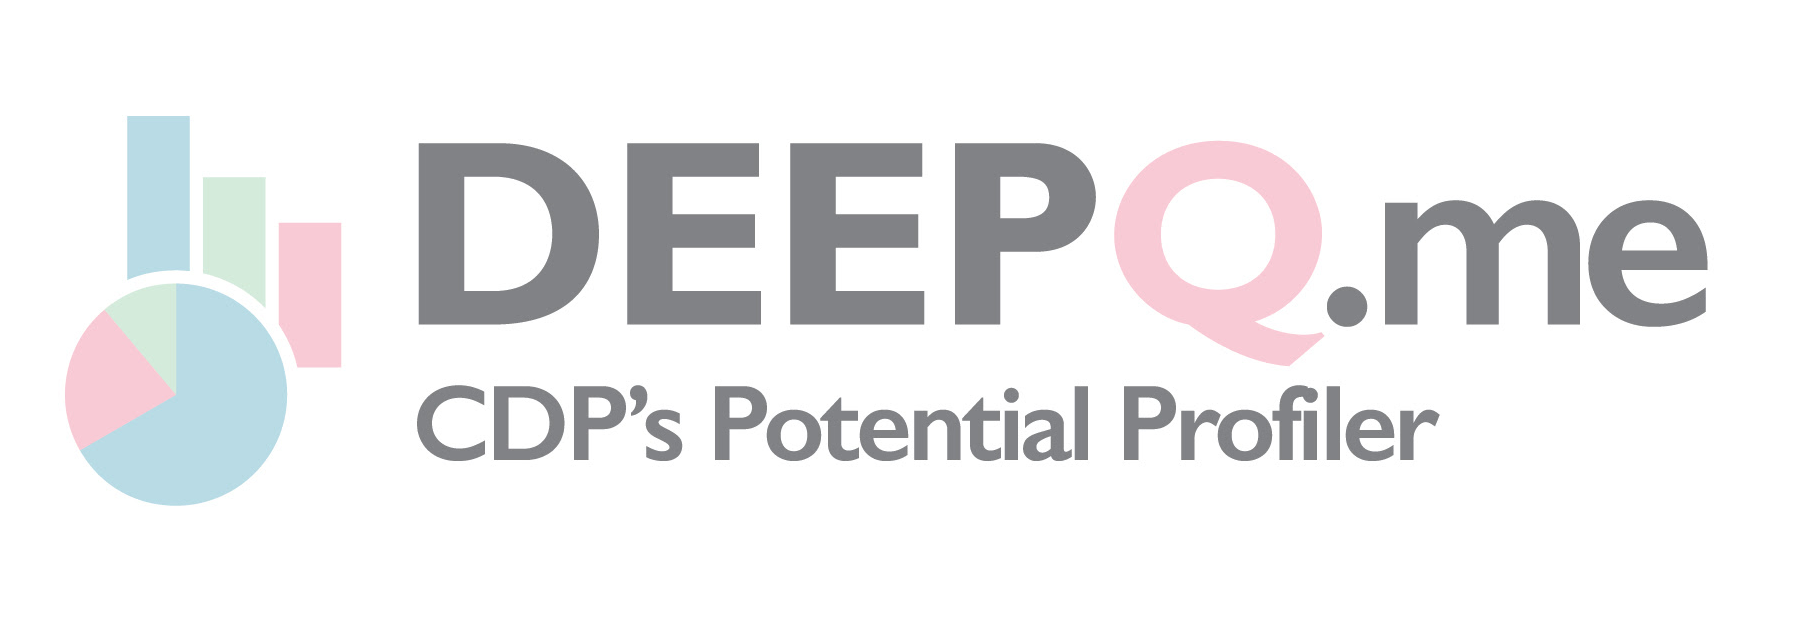 The DEEPQ Potential Profiler is an innovative psychometric developed over several years of research and practical experience in some of the world's biggest companies.